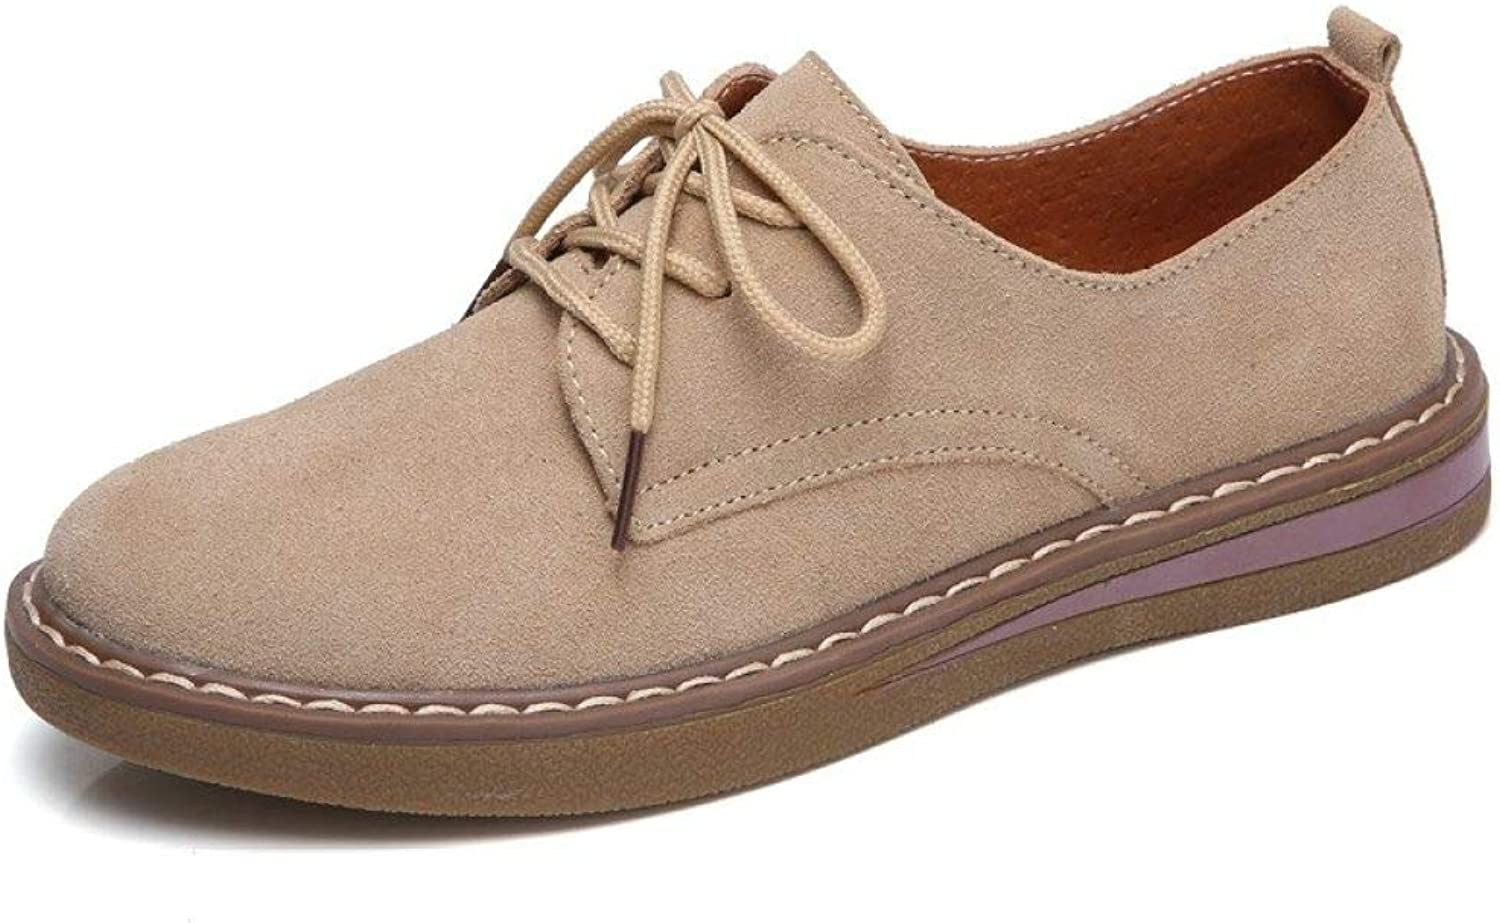 Fay Waters Women's Suede Round Toe Oxfords Lace Up Plain Toe Casual Classic Flat shoes